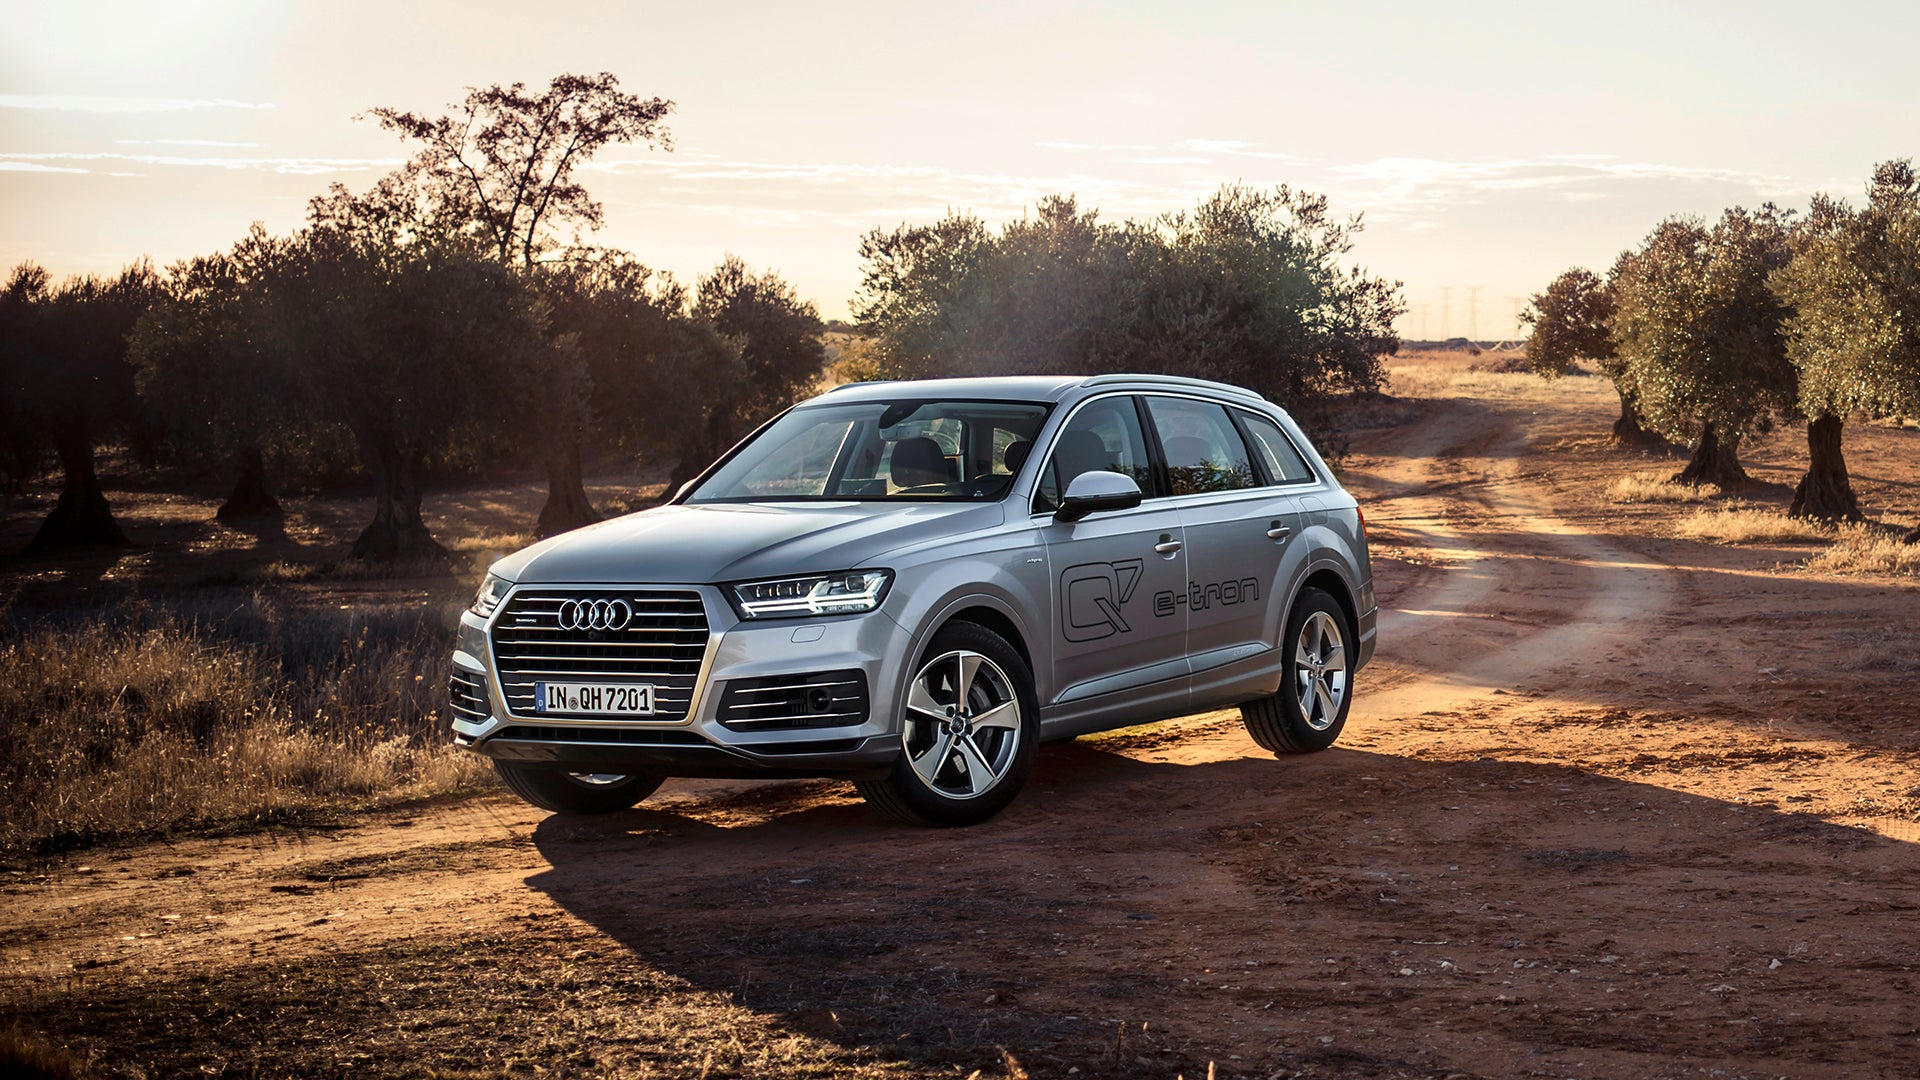 audi on auto world tdi cleanest the sets news worlds diesel s suv prices